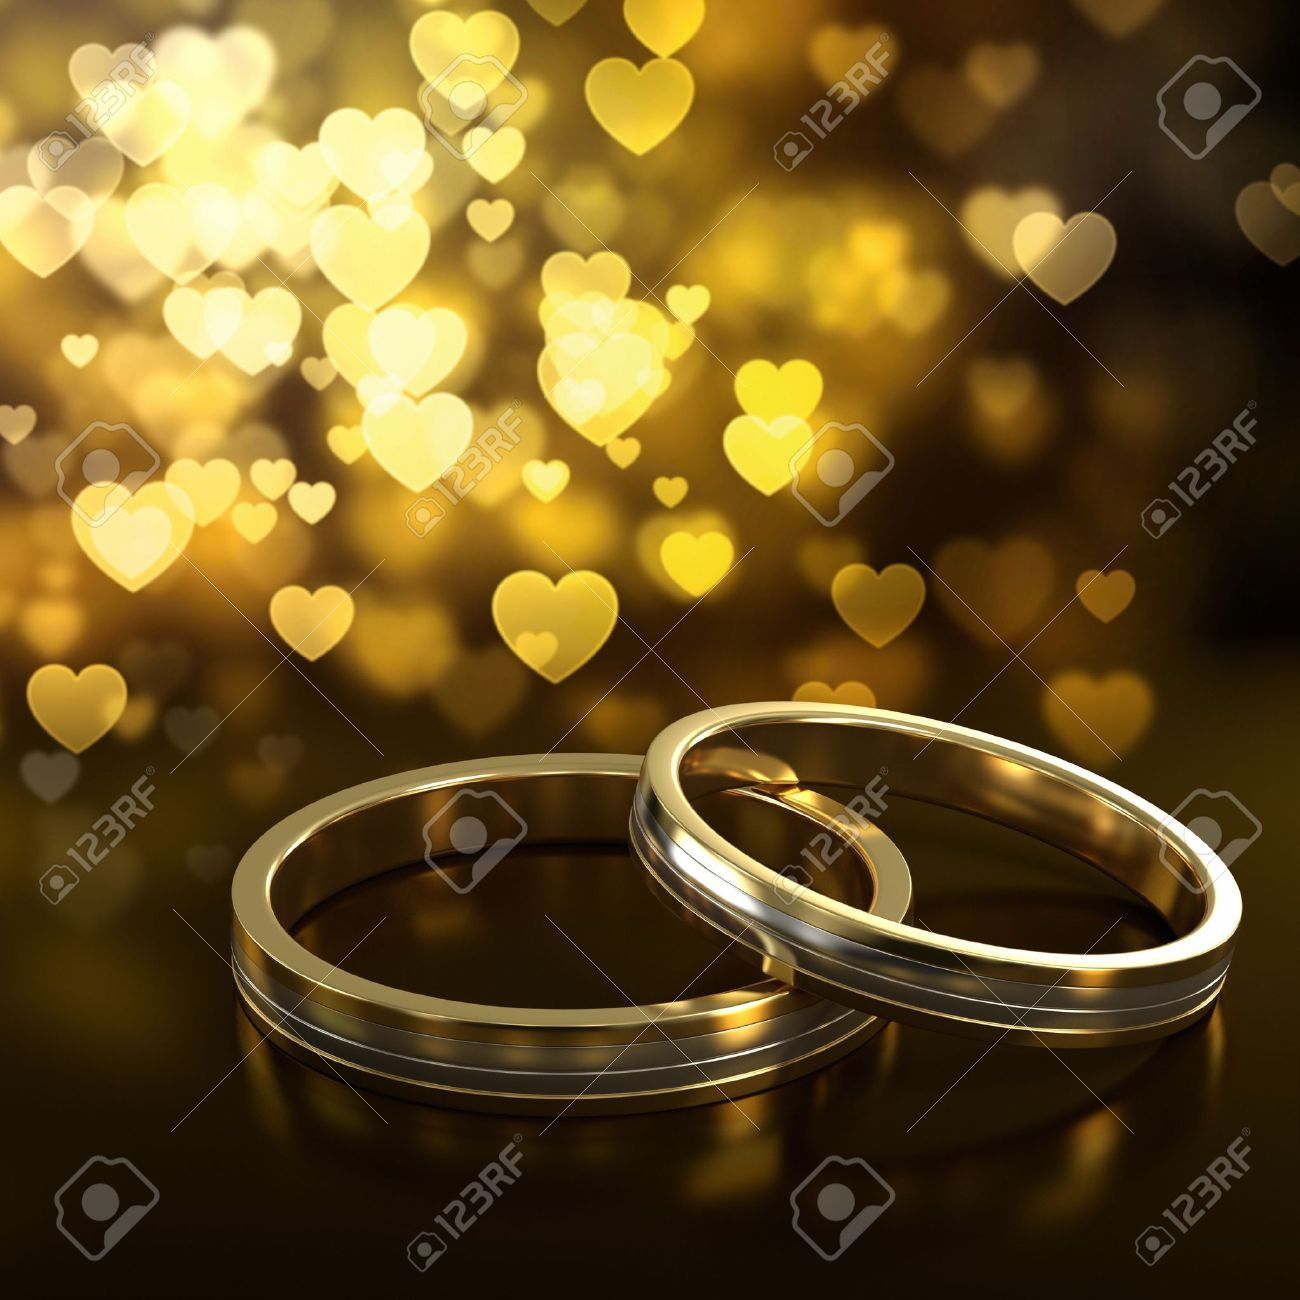 golden wedding two golden wedding rings with heart bokeh on background